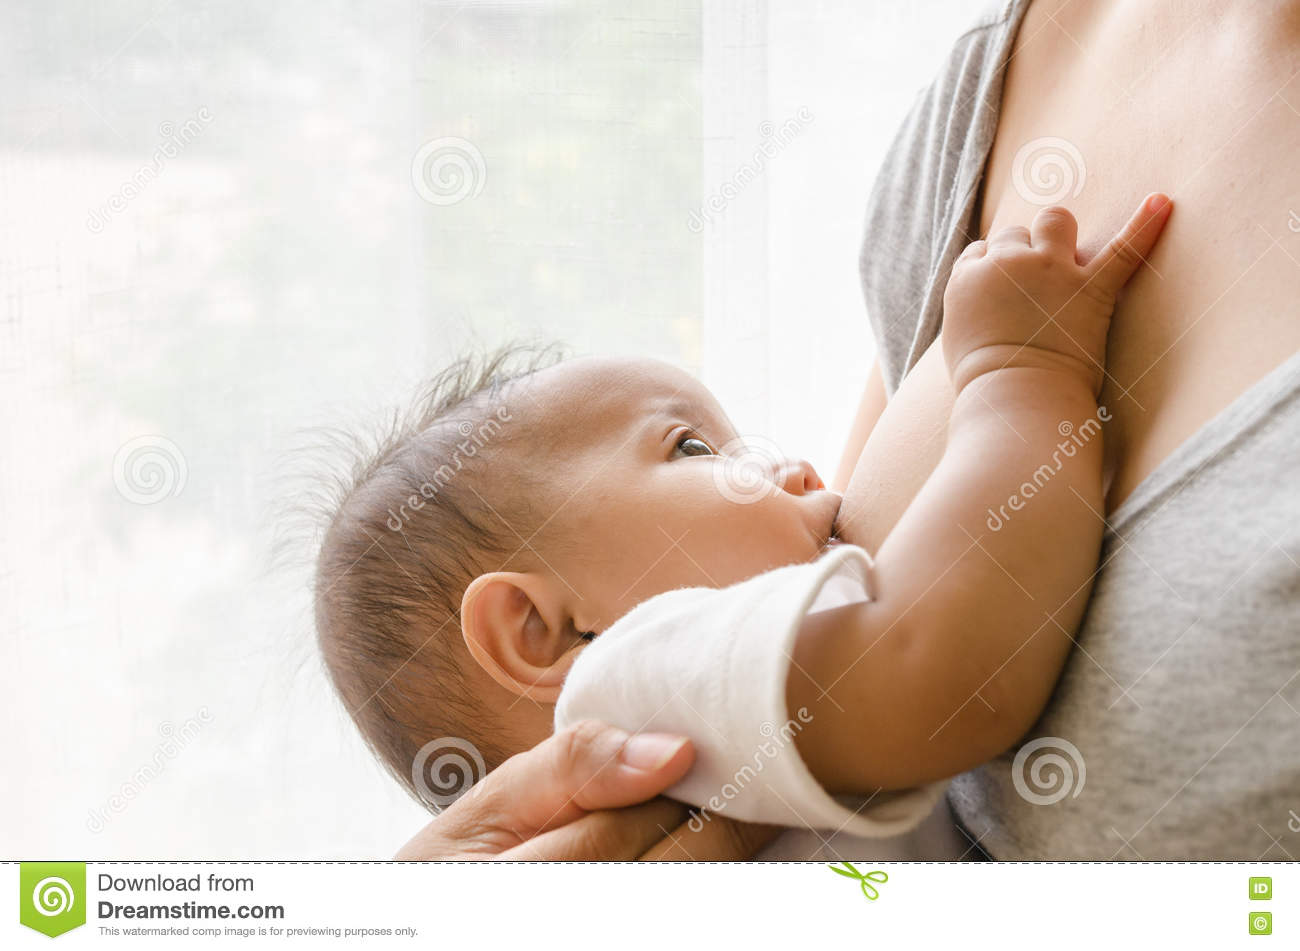 Theme, very Infant breast milk consider, that